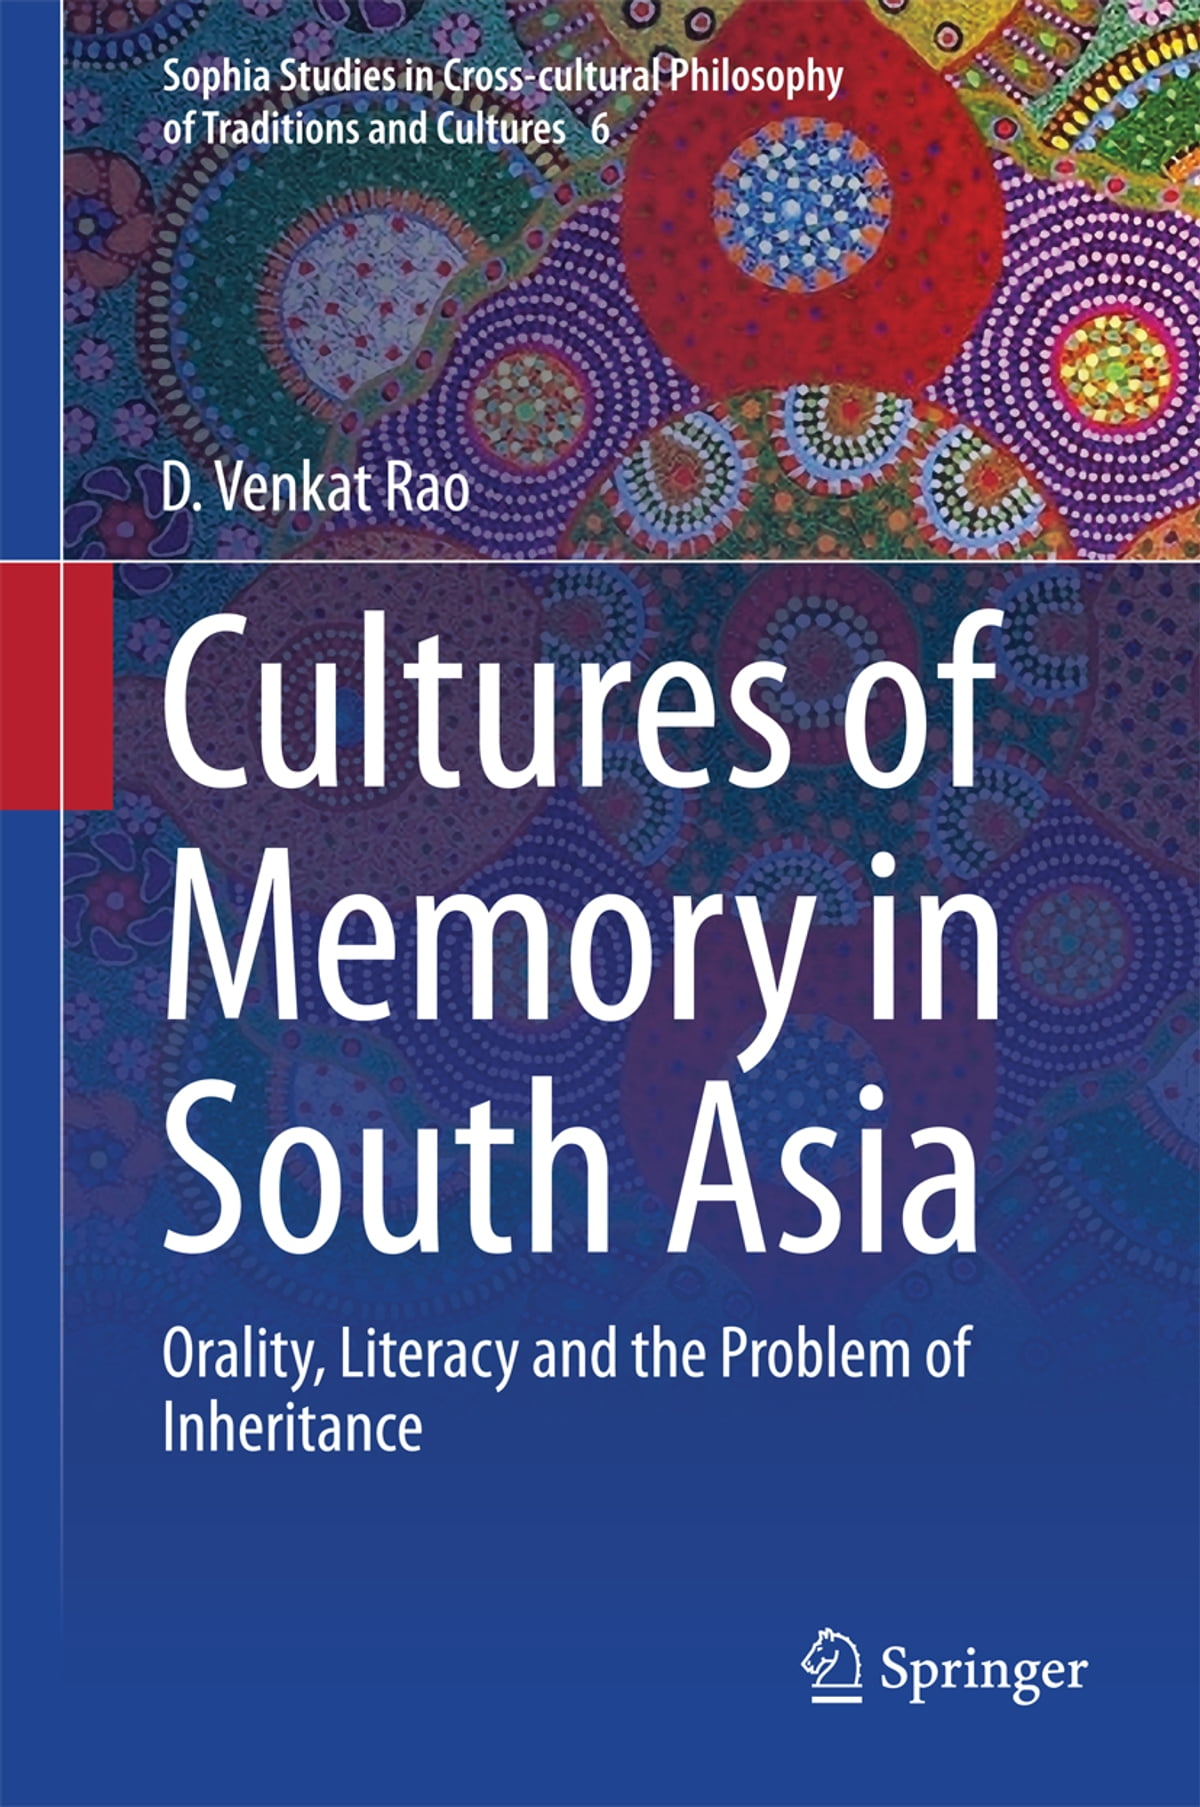 Cultures Of Memory In South Asia Ebook By D Venkat Rao 9788132216988 Rakuten Kobo United States Master rao s astrology center chinese and western astrology by master rao. kobo